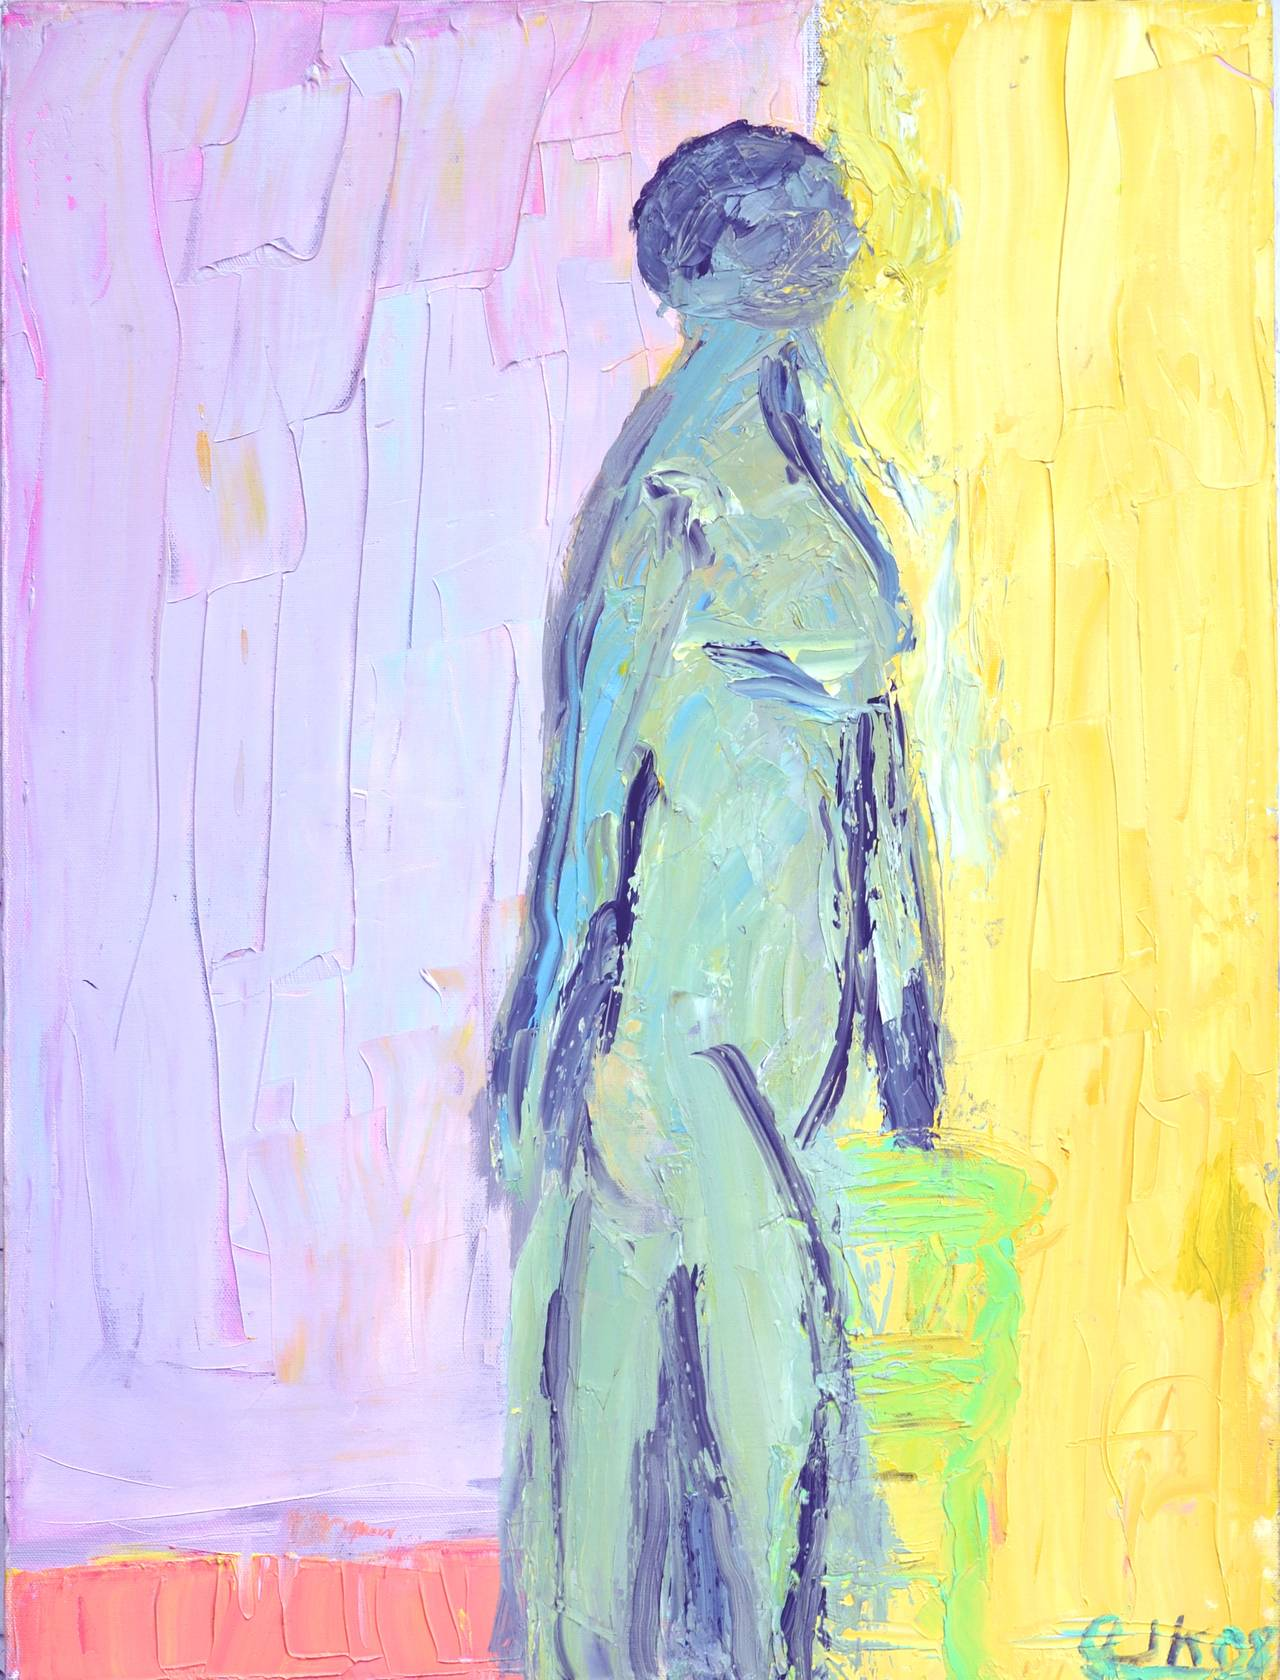 Waiting For Her Lover Bay Area Figurative Movement - Painting by Arthur Krakower